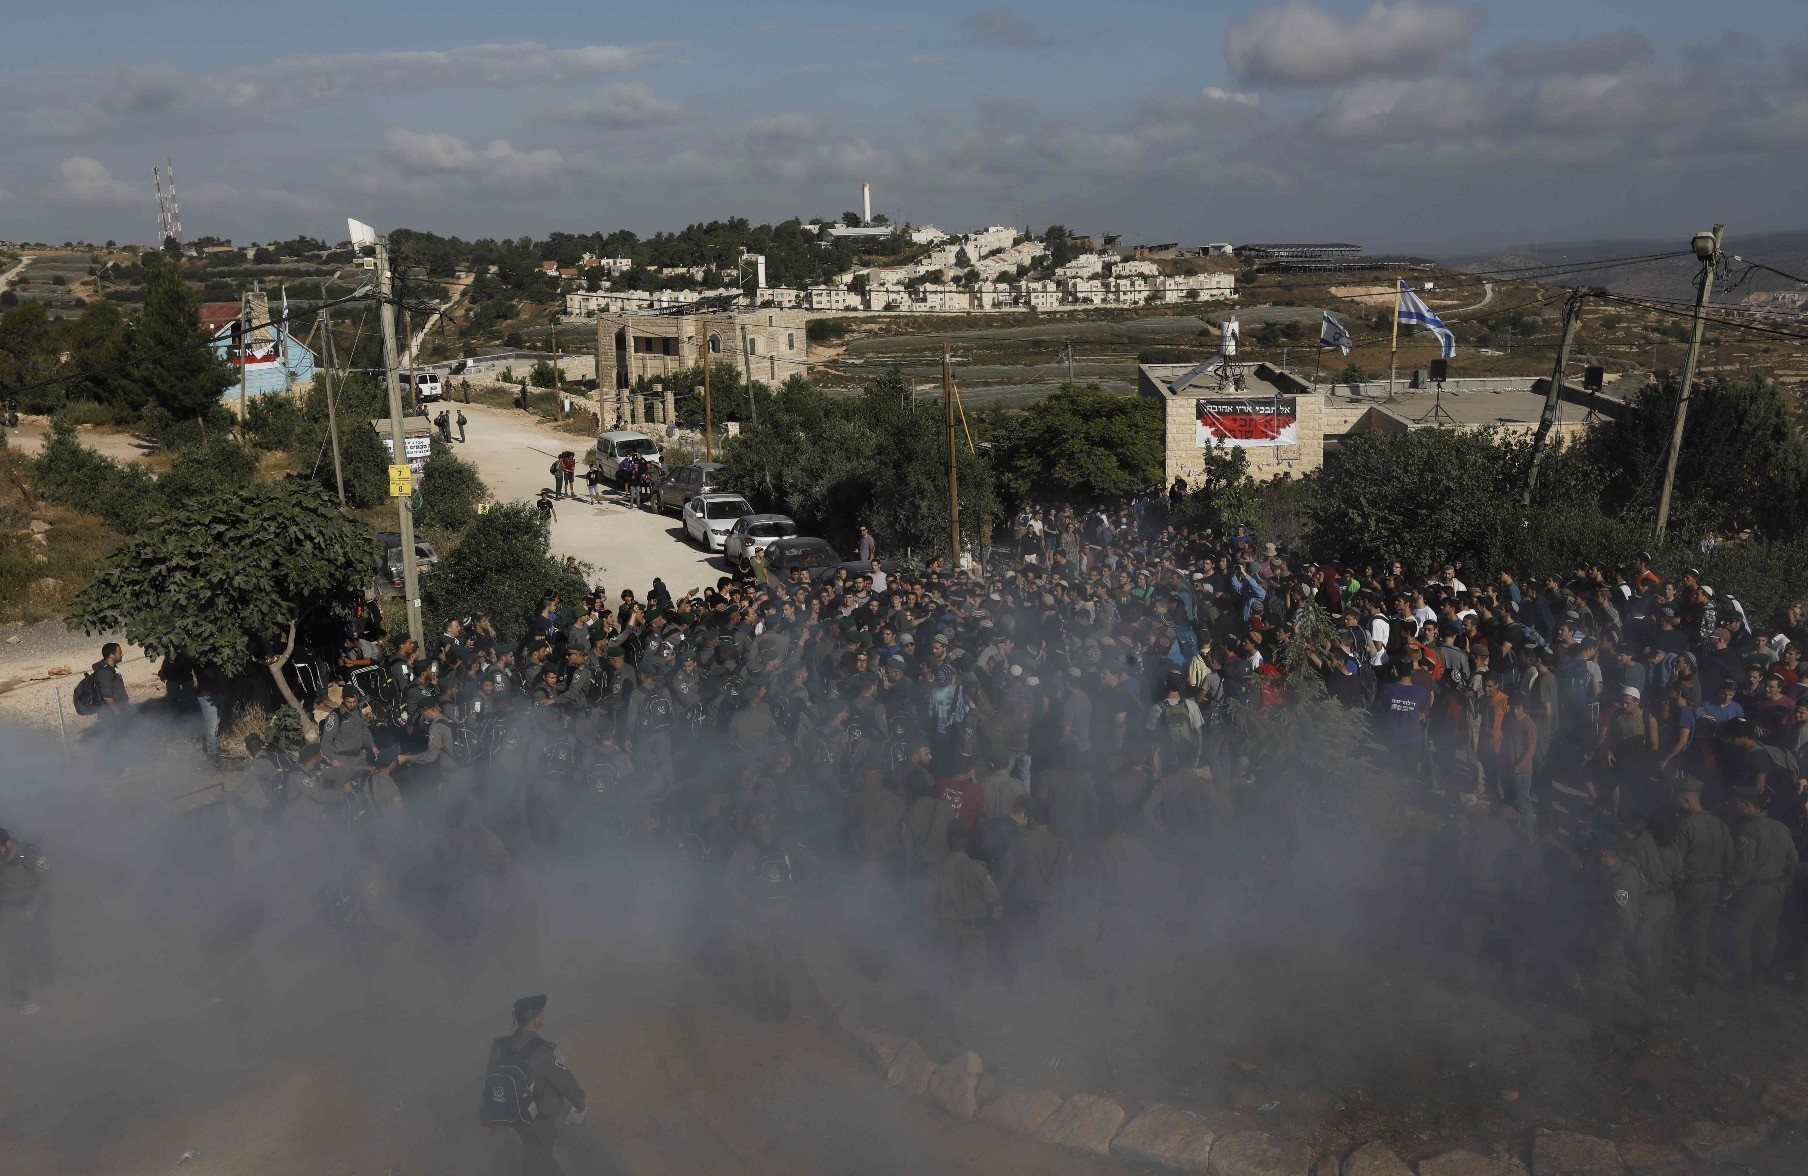 Israeli settlers scuffle with Israeli security forces at Netiv Hau2019avot settlement near Bethlehem in the occupied West Bank, June 12.